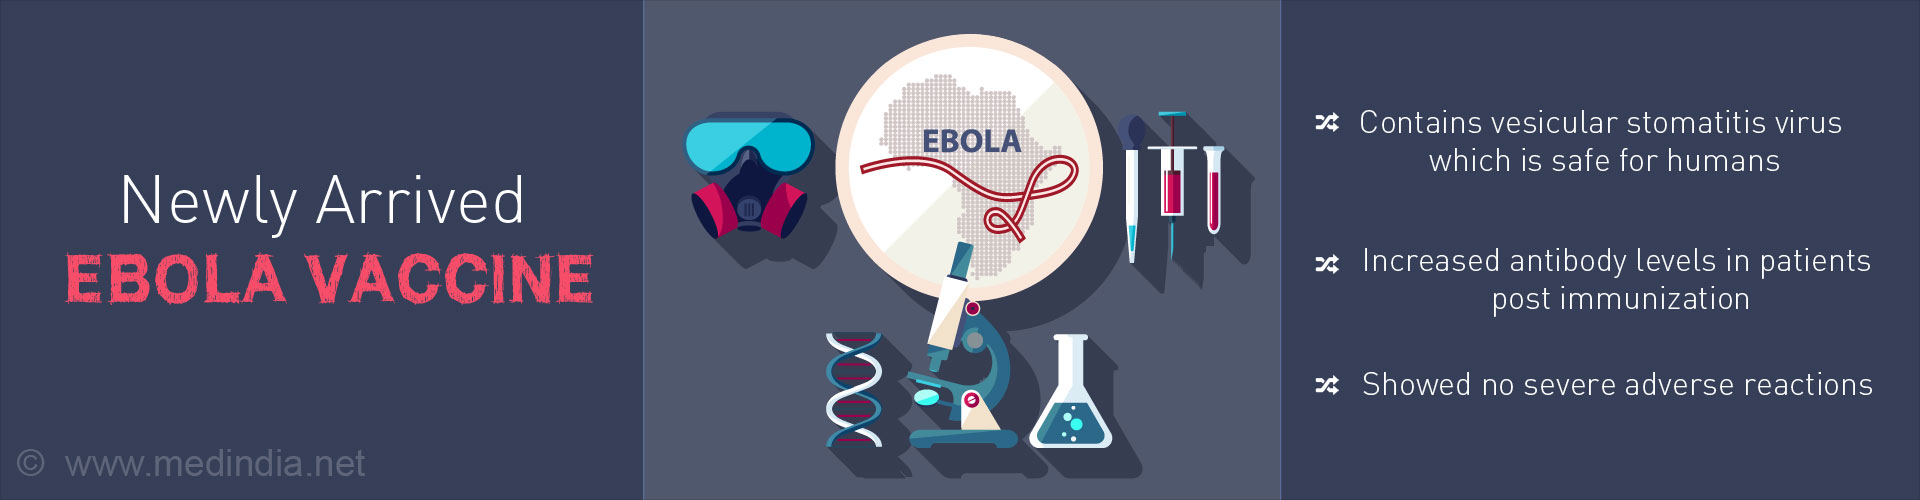 Newly Arrived Ebola Vaccine - Contains vesicular slomatitis virus which is safer for humans - Increased antibody levels in patients post immunization - Showed no severe adverse reactions